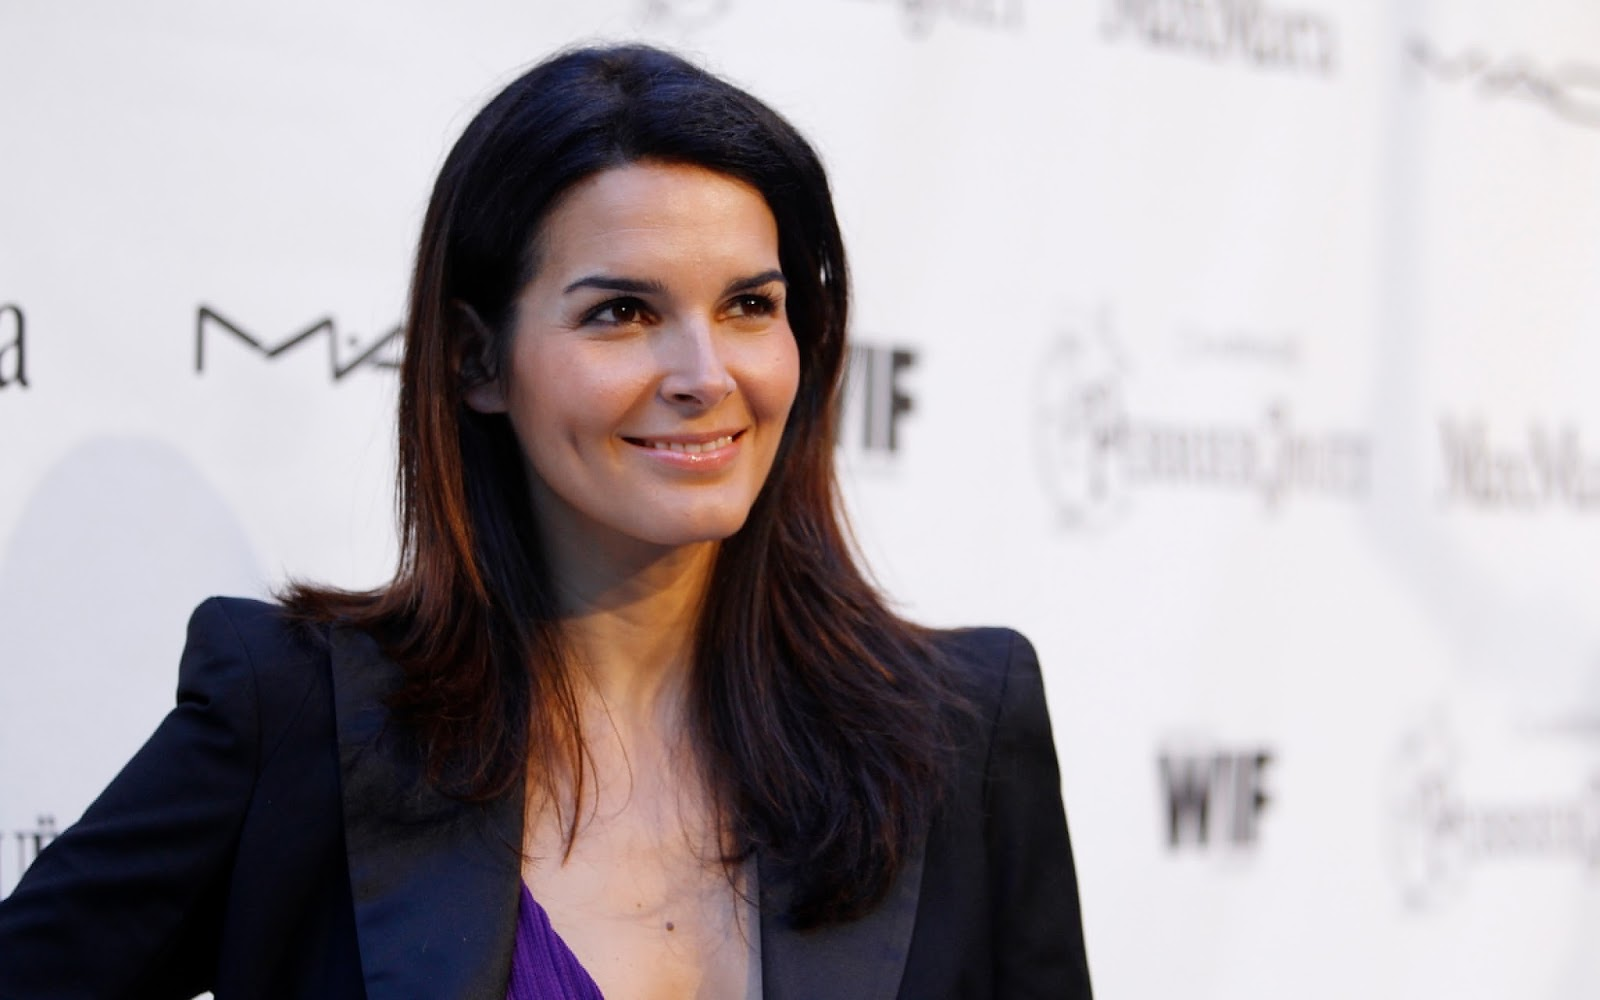 Angie Harmon born August 10, 1972 (age 46) Angie Harmon born August 10, 1972 (age 46) new pics